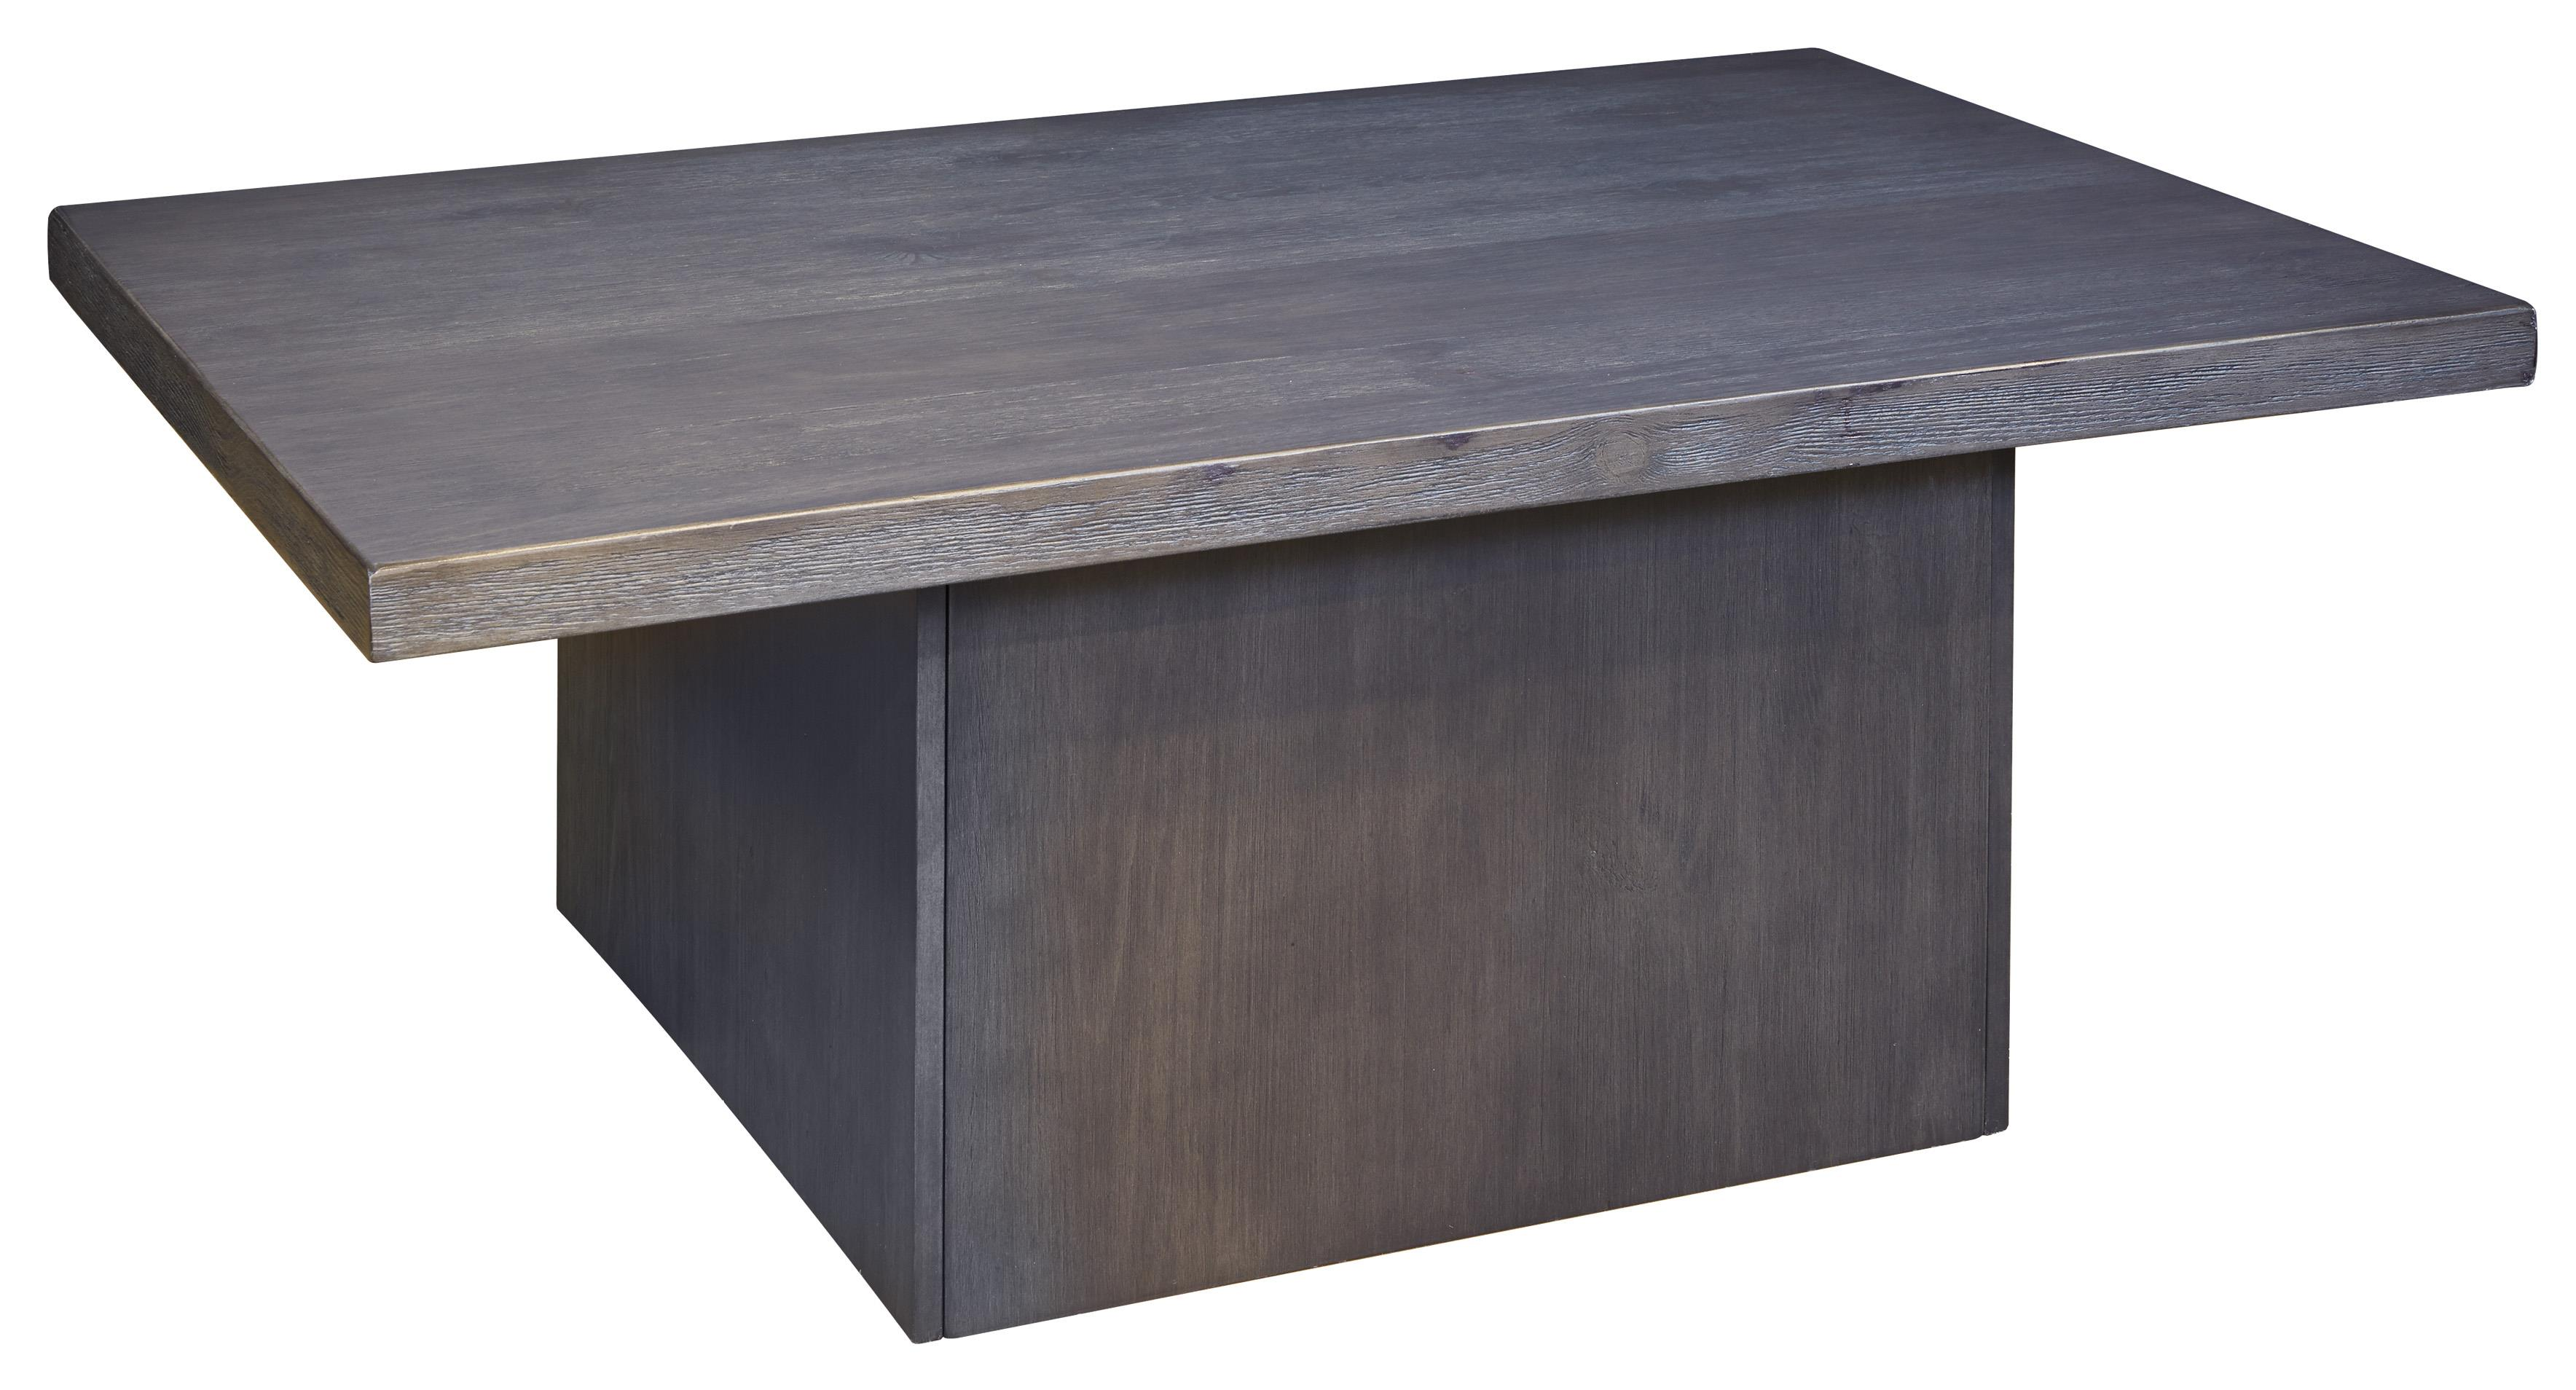 Signature Design by Ashley Lamoille Rectangular Cocktail Table - Item Number: T850-1